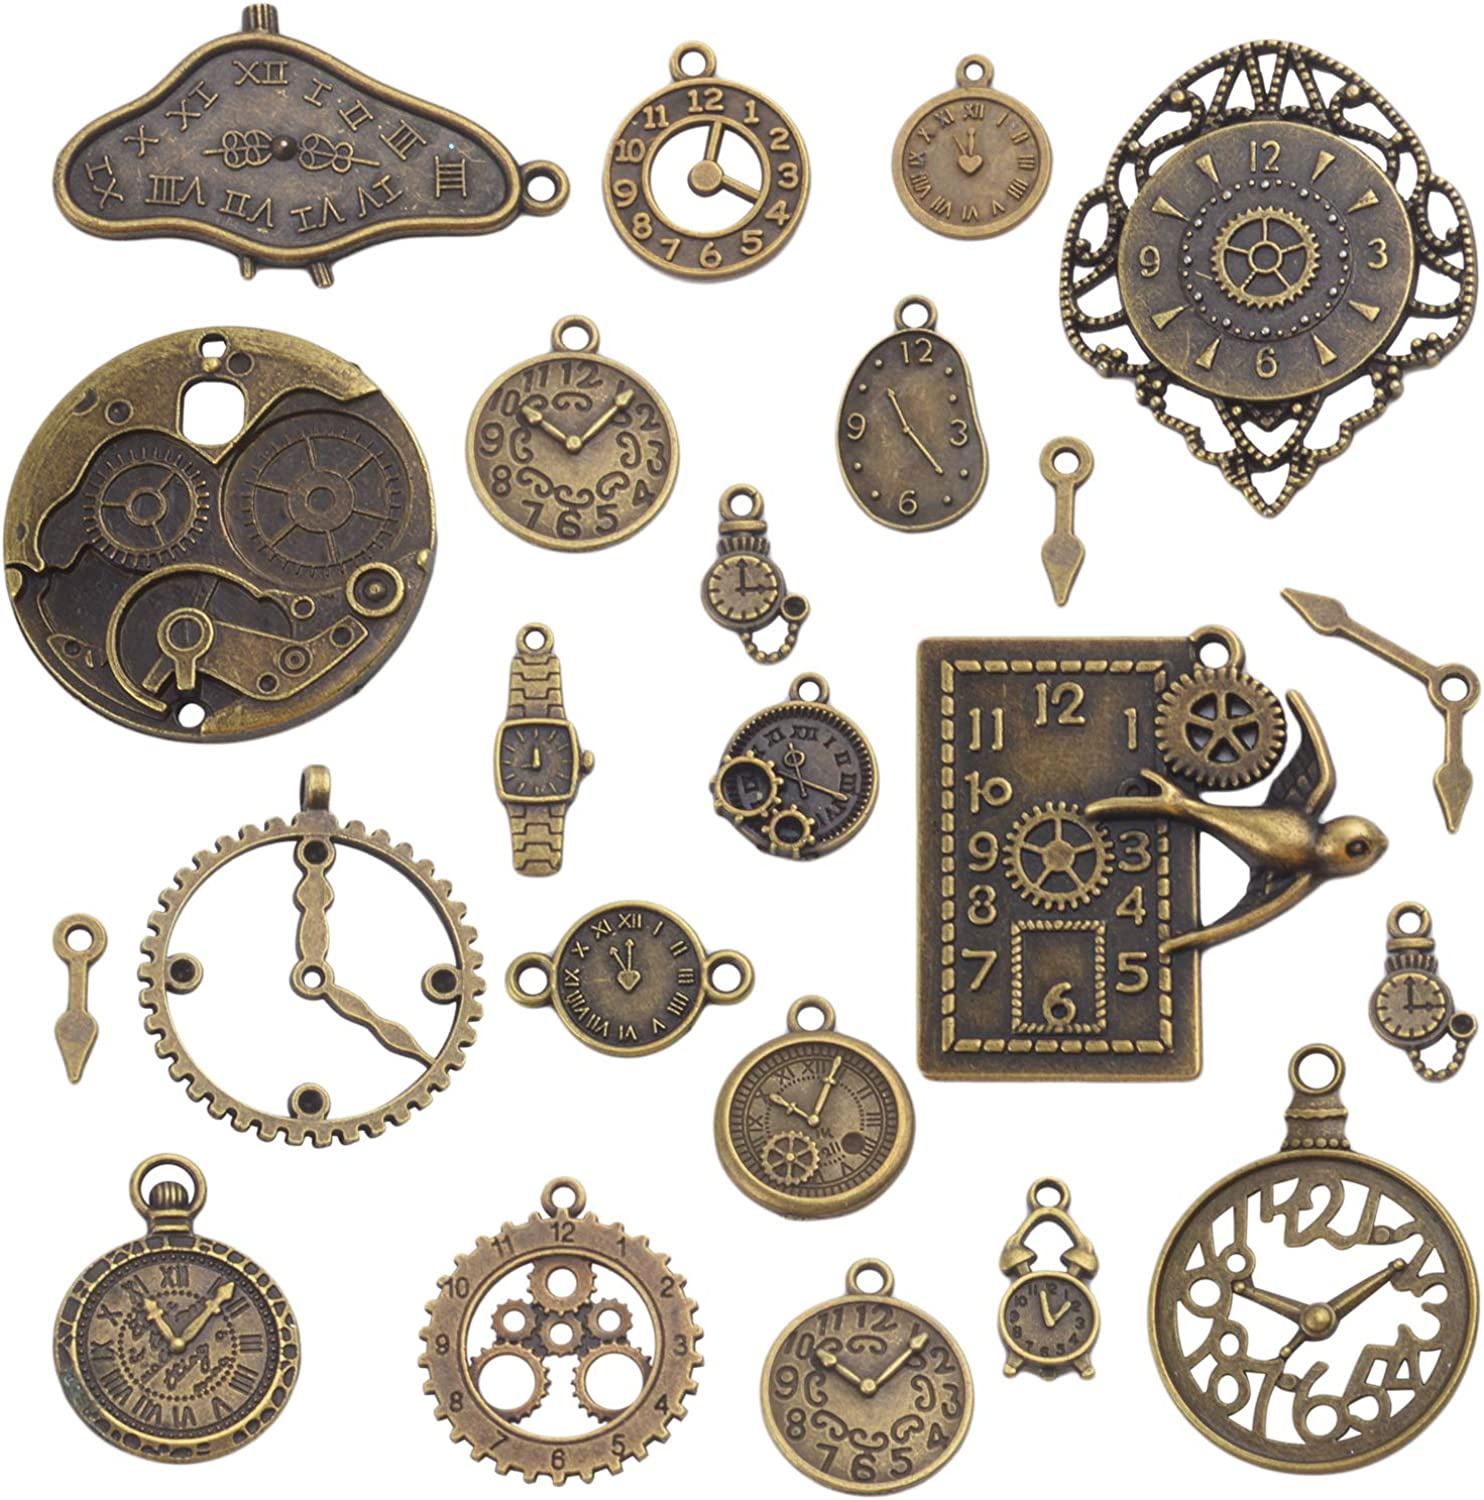 Clock Face Charm Pendant,100 Gram Multi-Style Clocks and Watches Dial Face Movement Charms Gears Steampunk Pendant Craft Supplies for DIY Jewelry Making